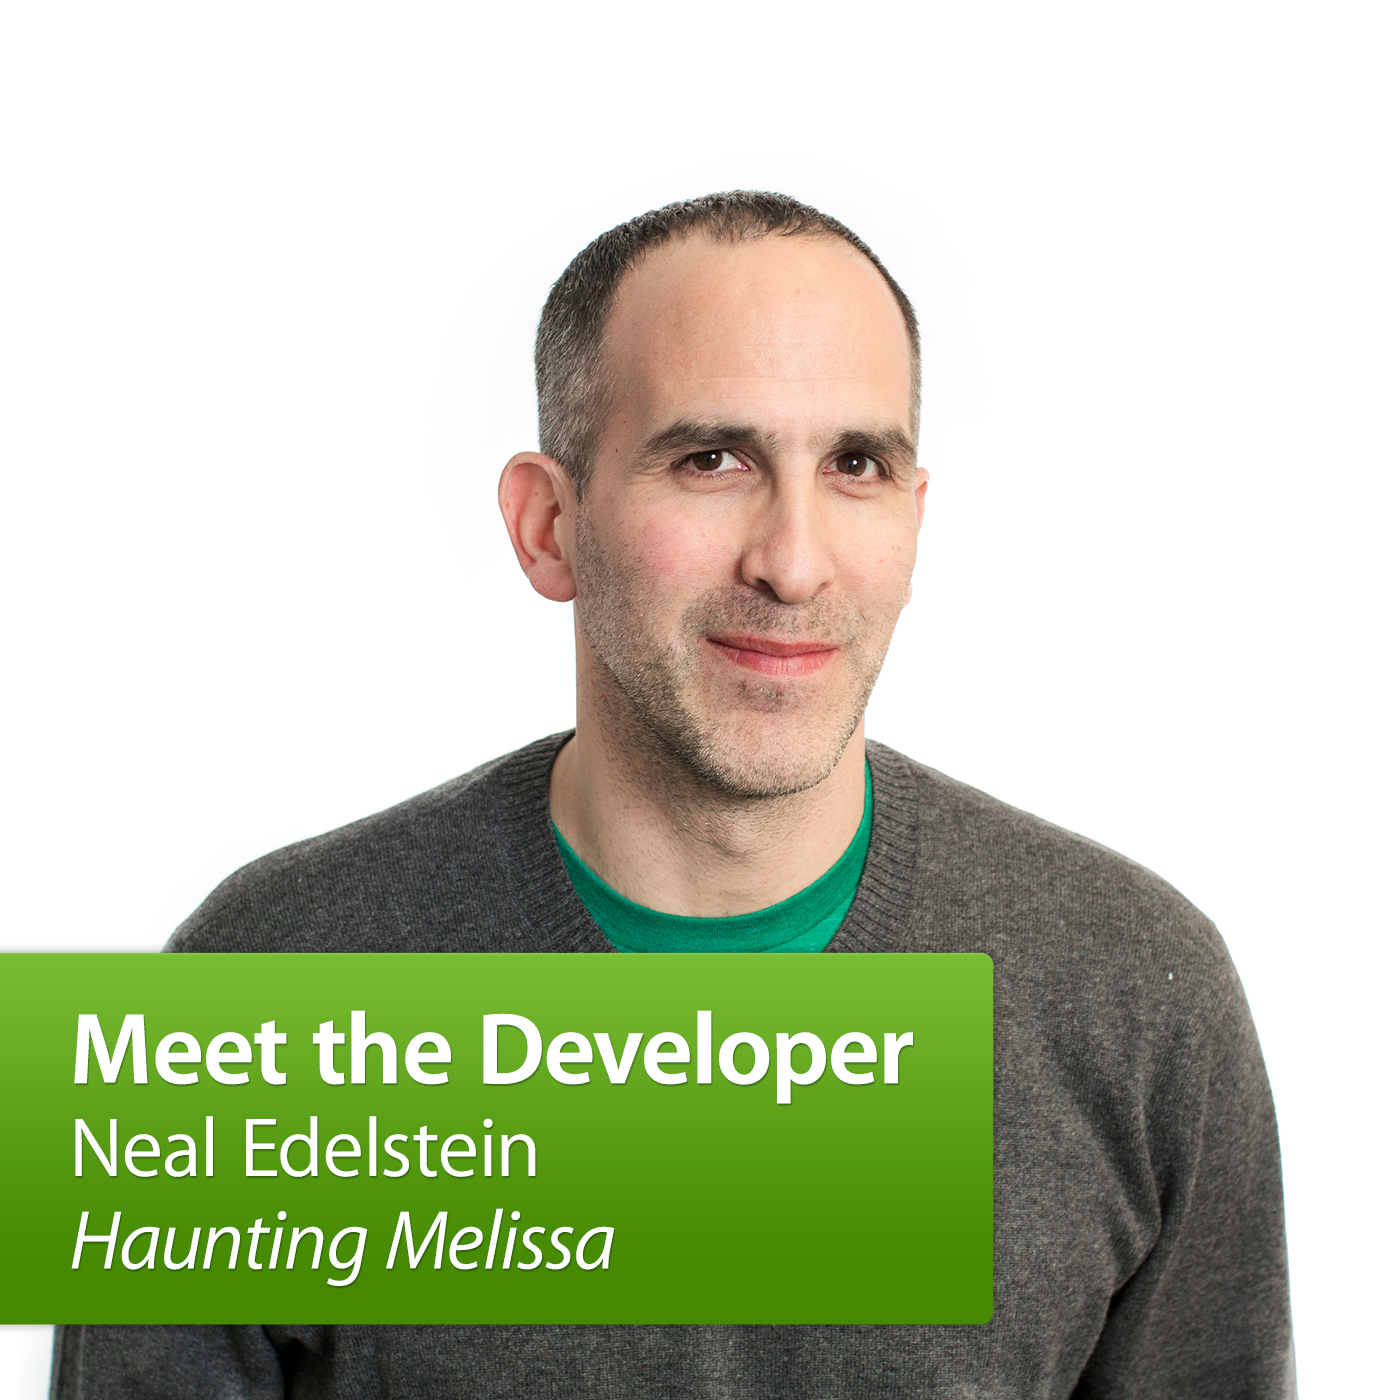 Neal Edelstein, Haunting Melissa: Meet the Developer